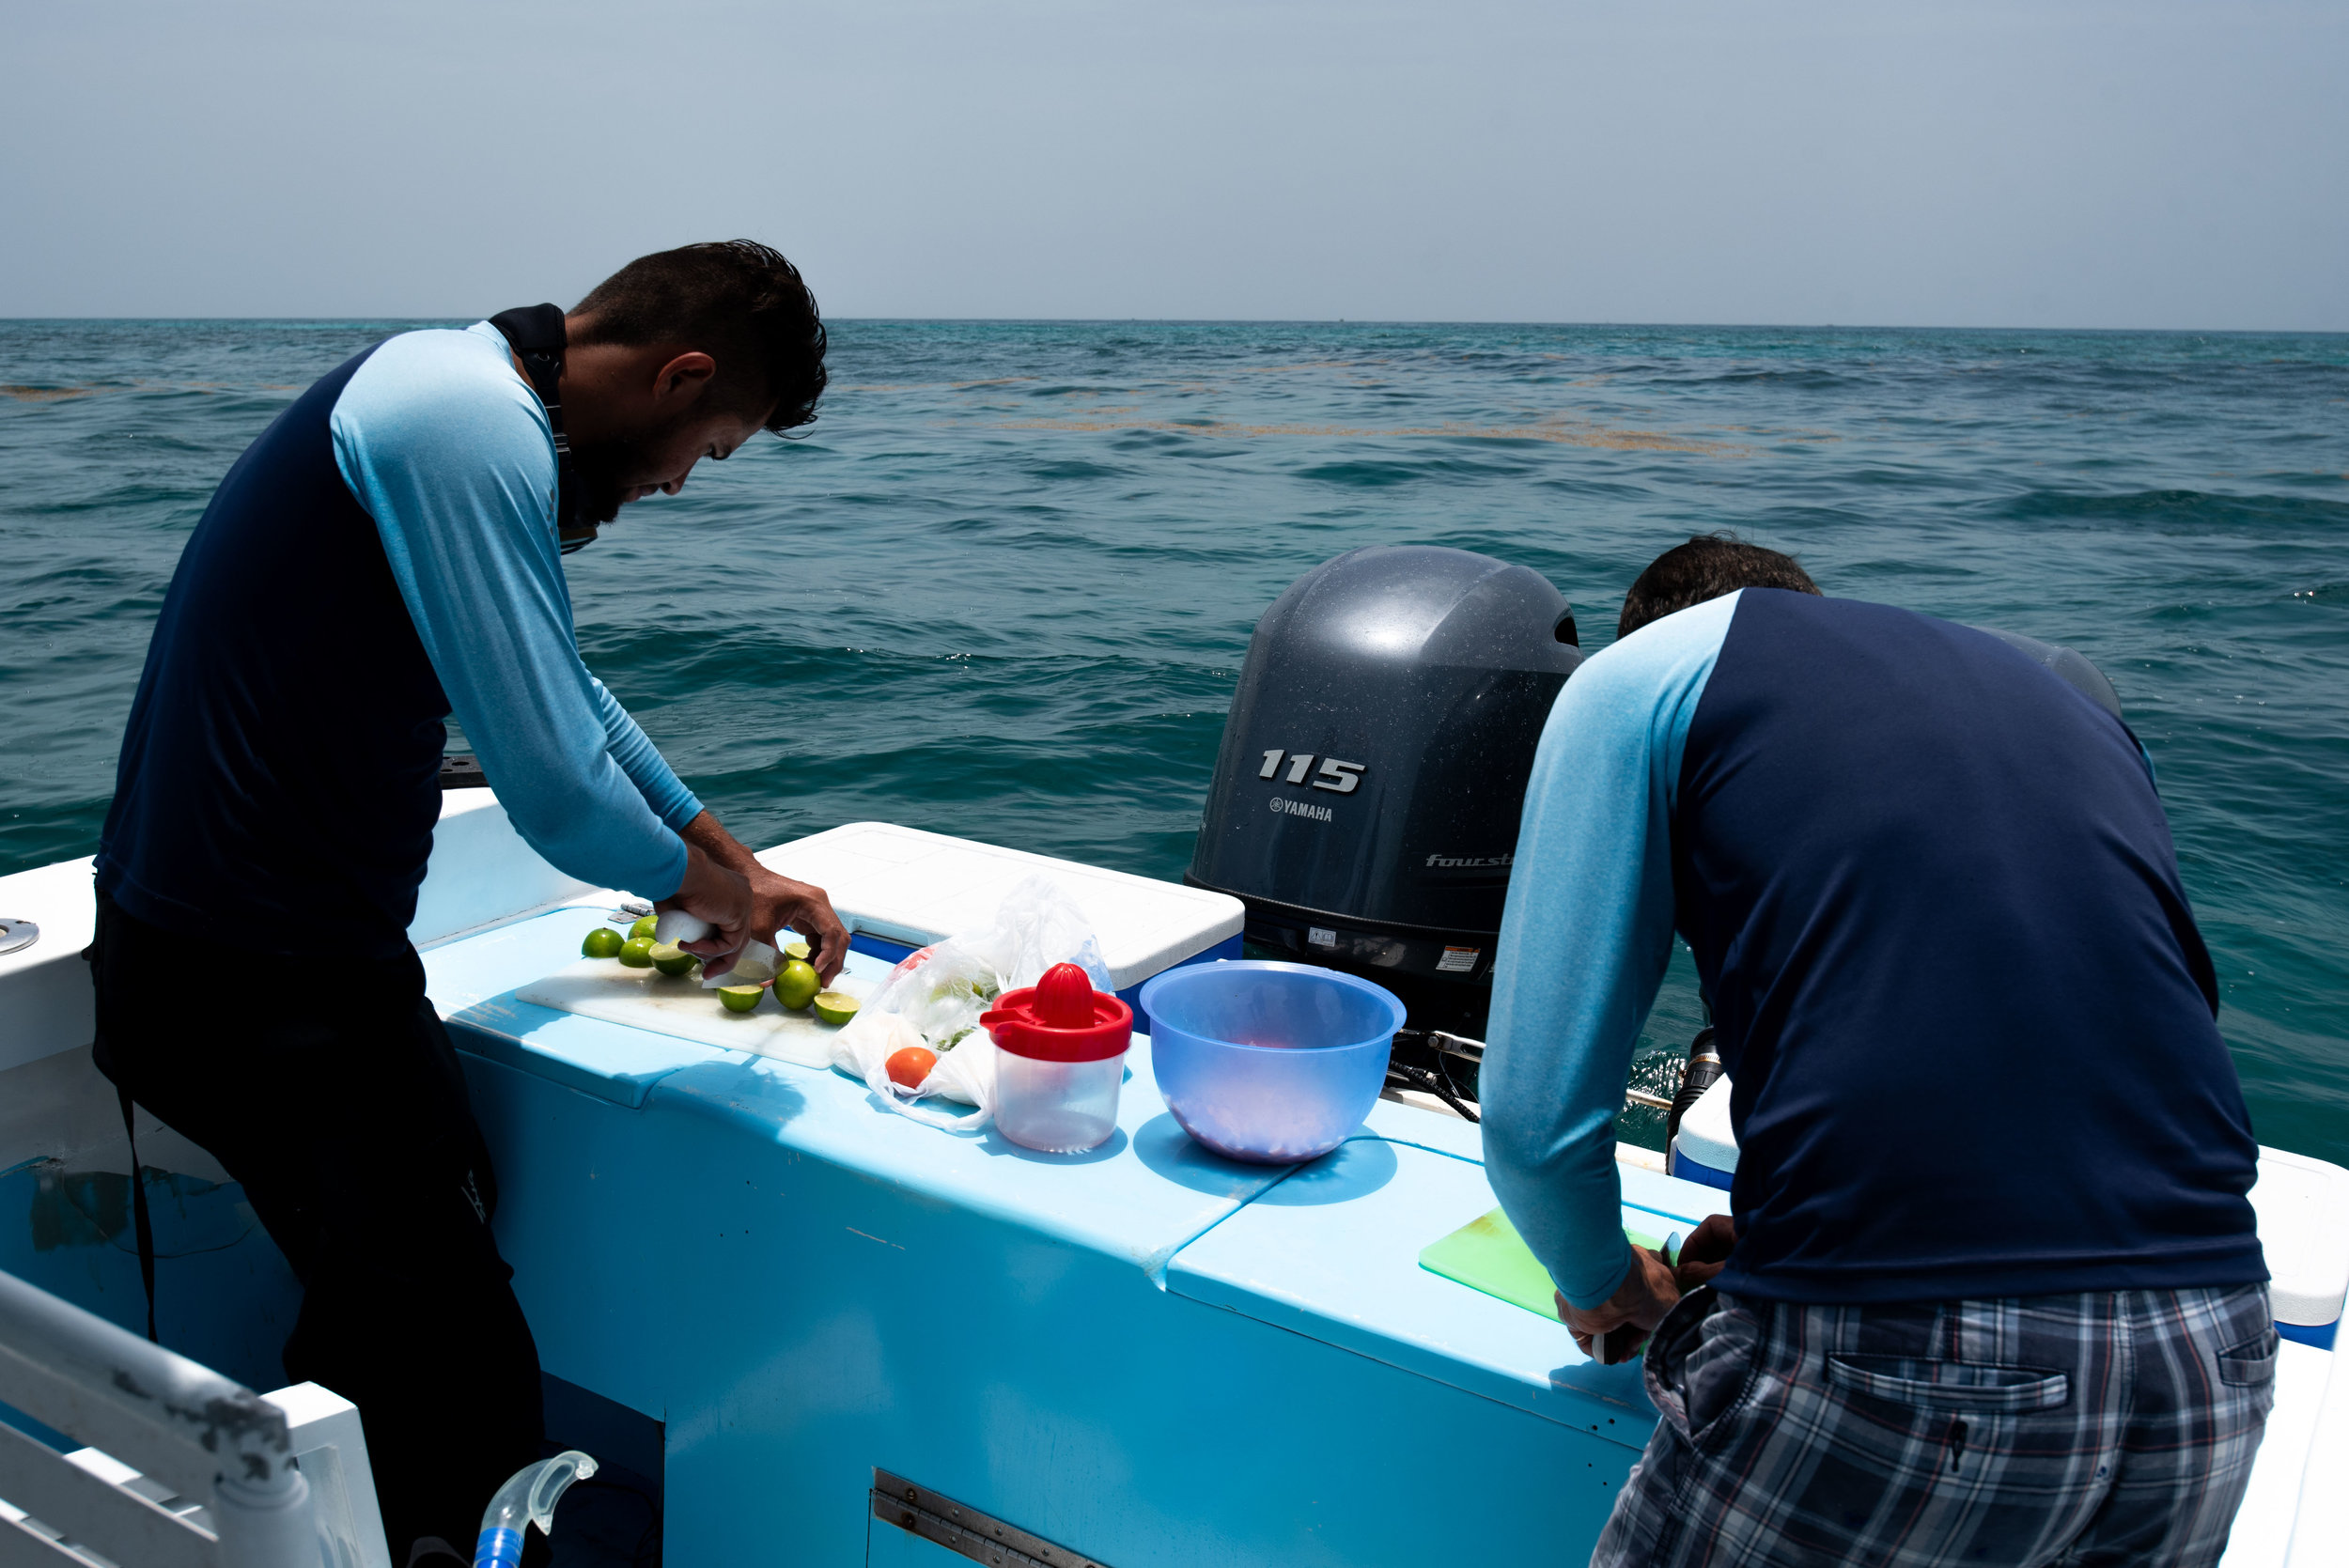 Our guides making us fresh ceviche.